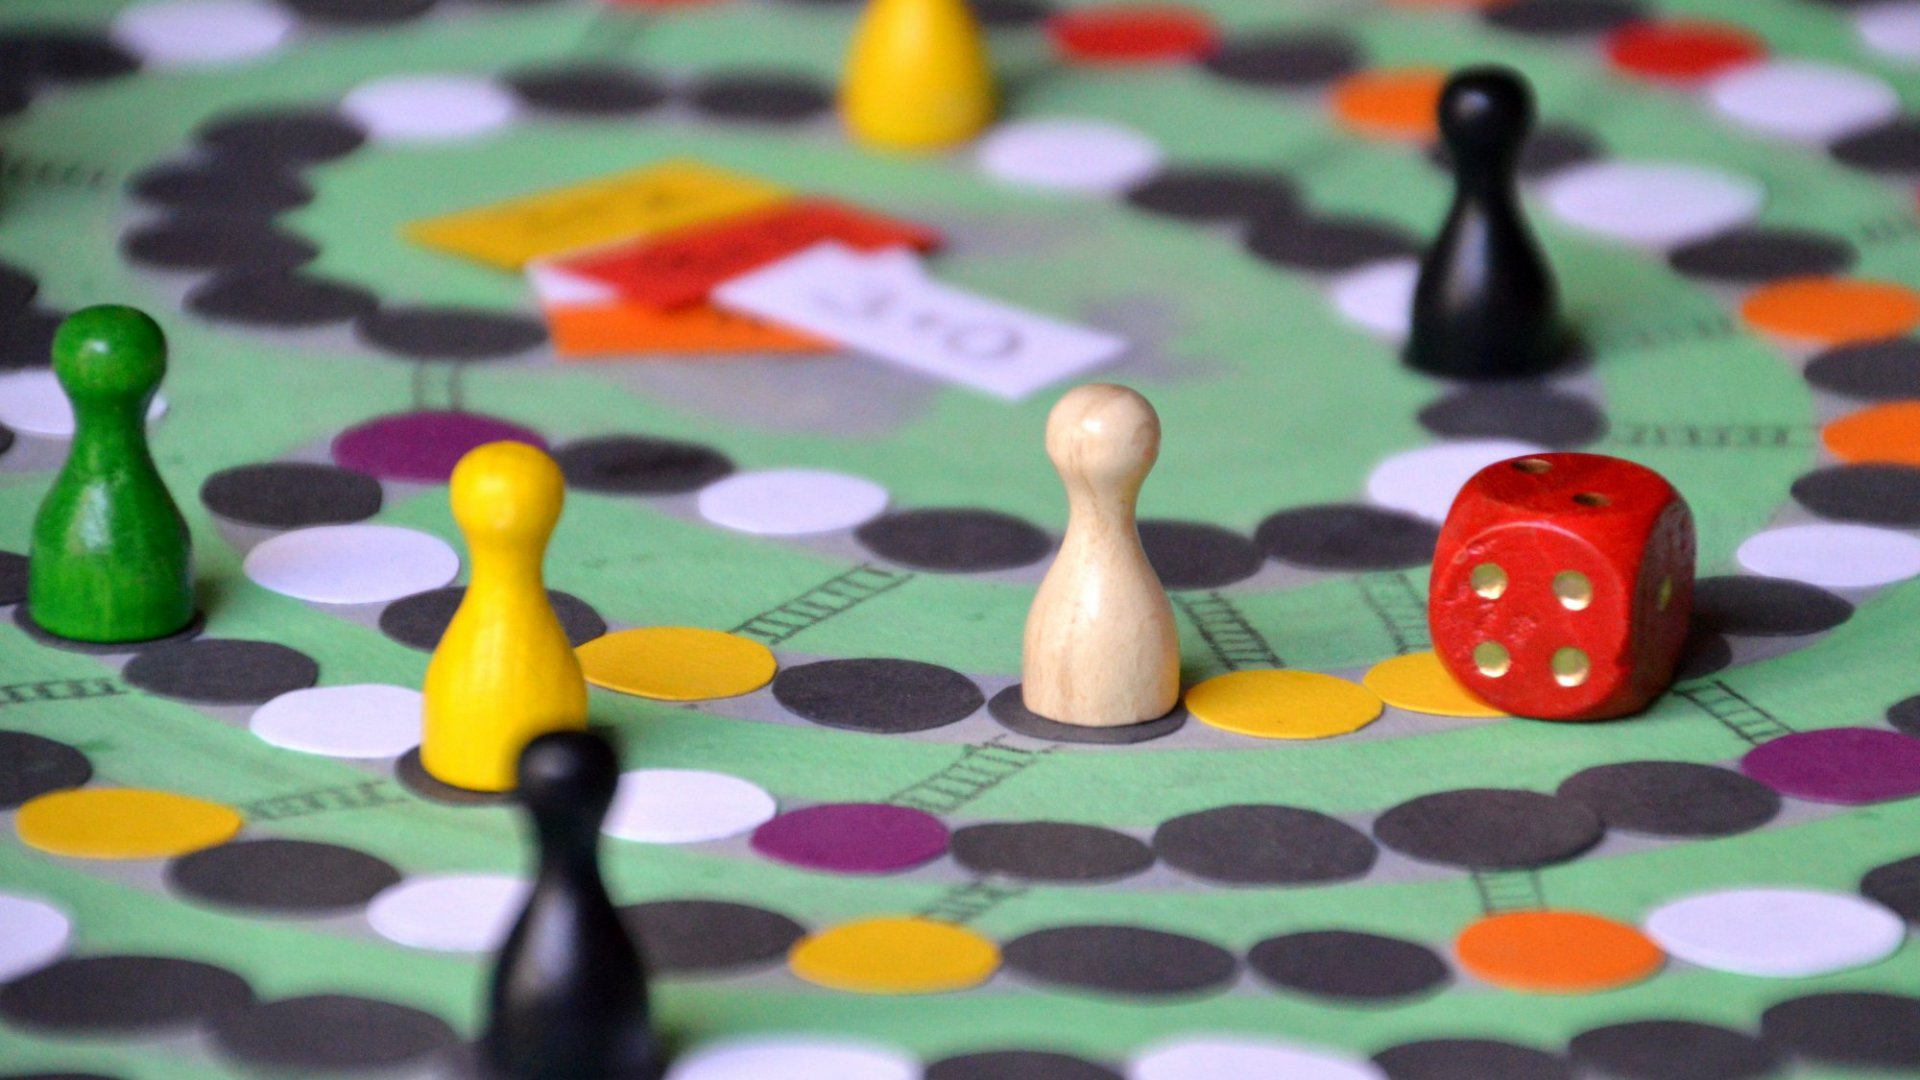 How to Gamify Your Business: This 1 Practice Will Improve Your Bottom Line Overnight